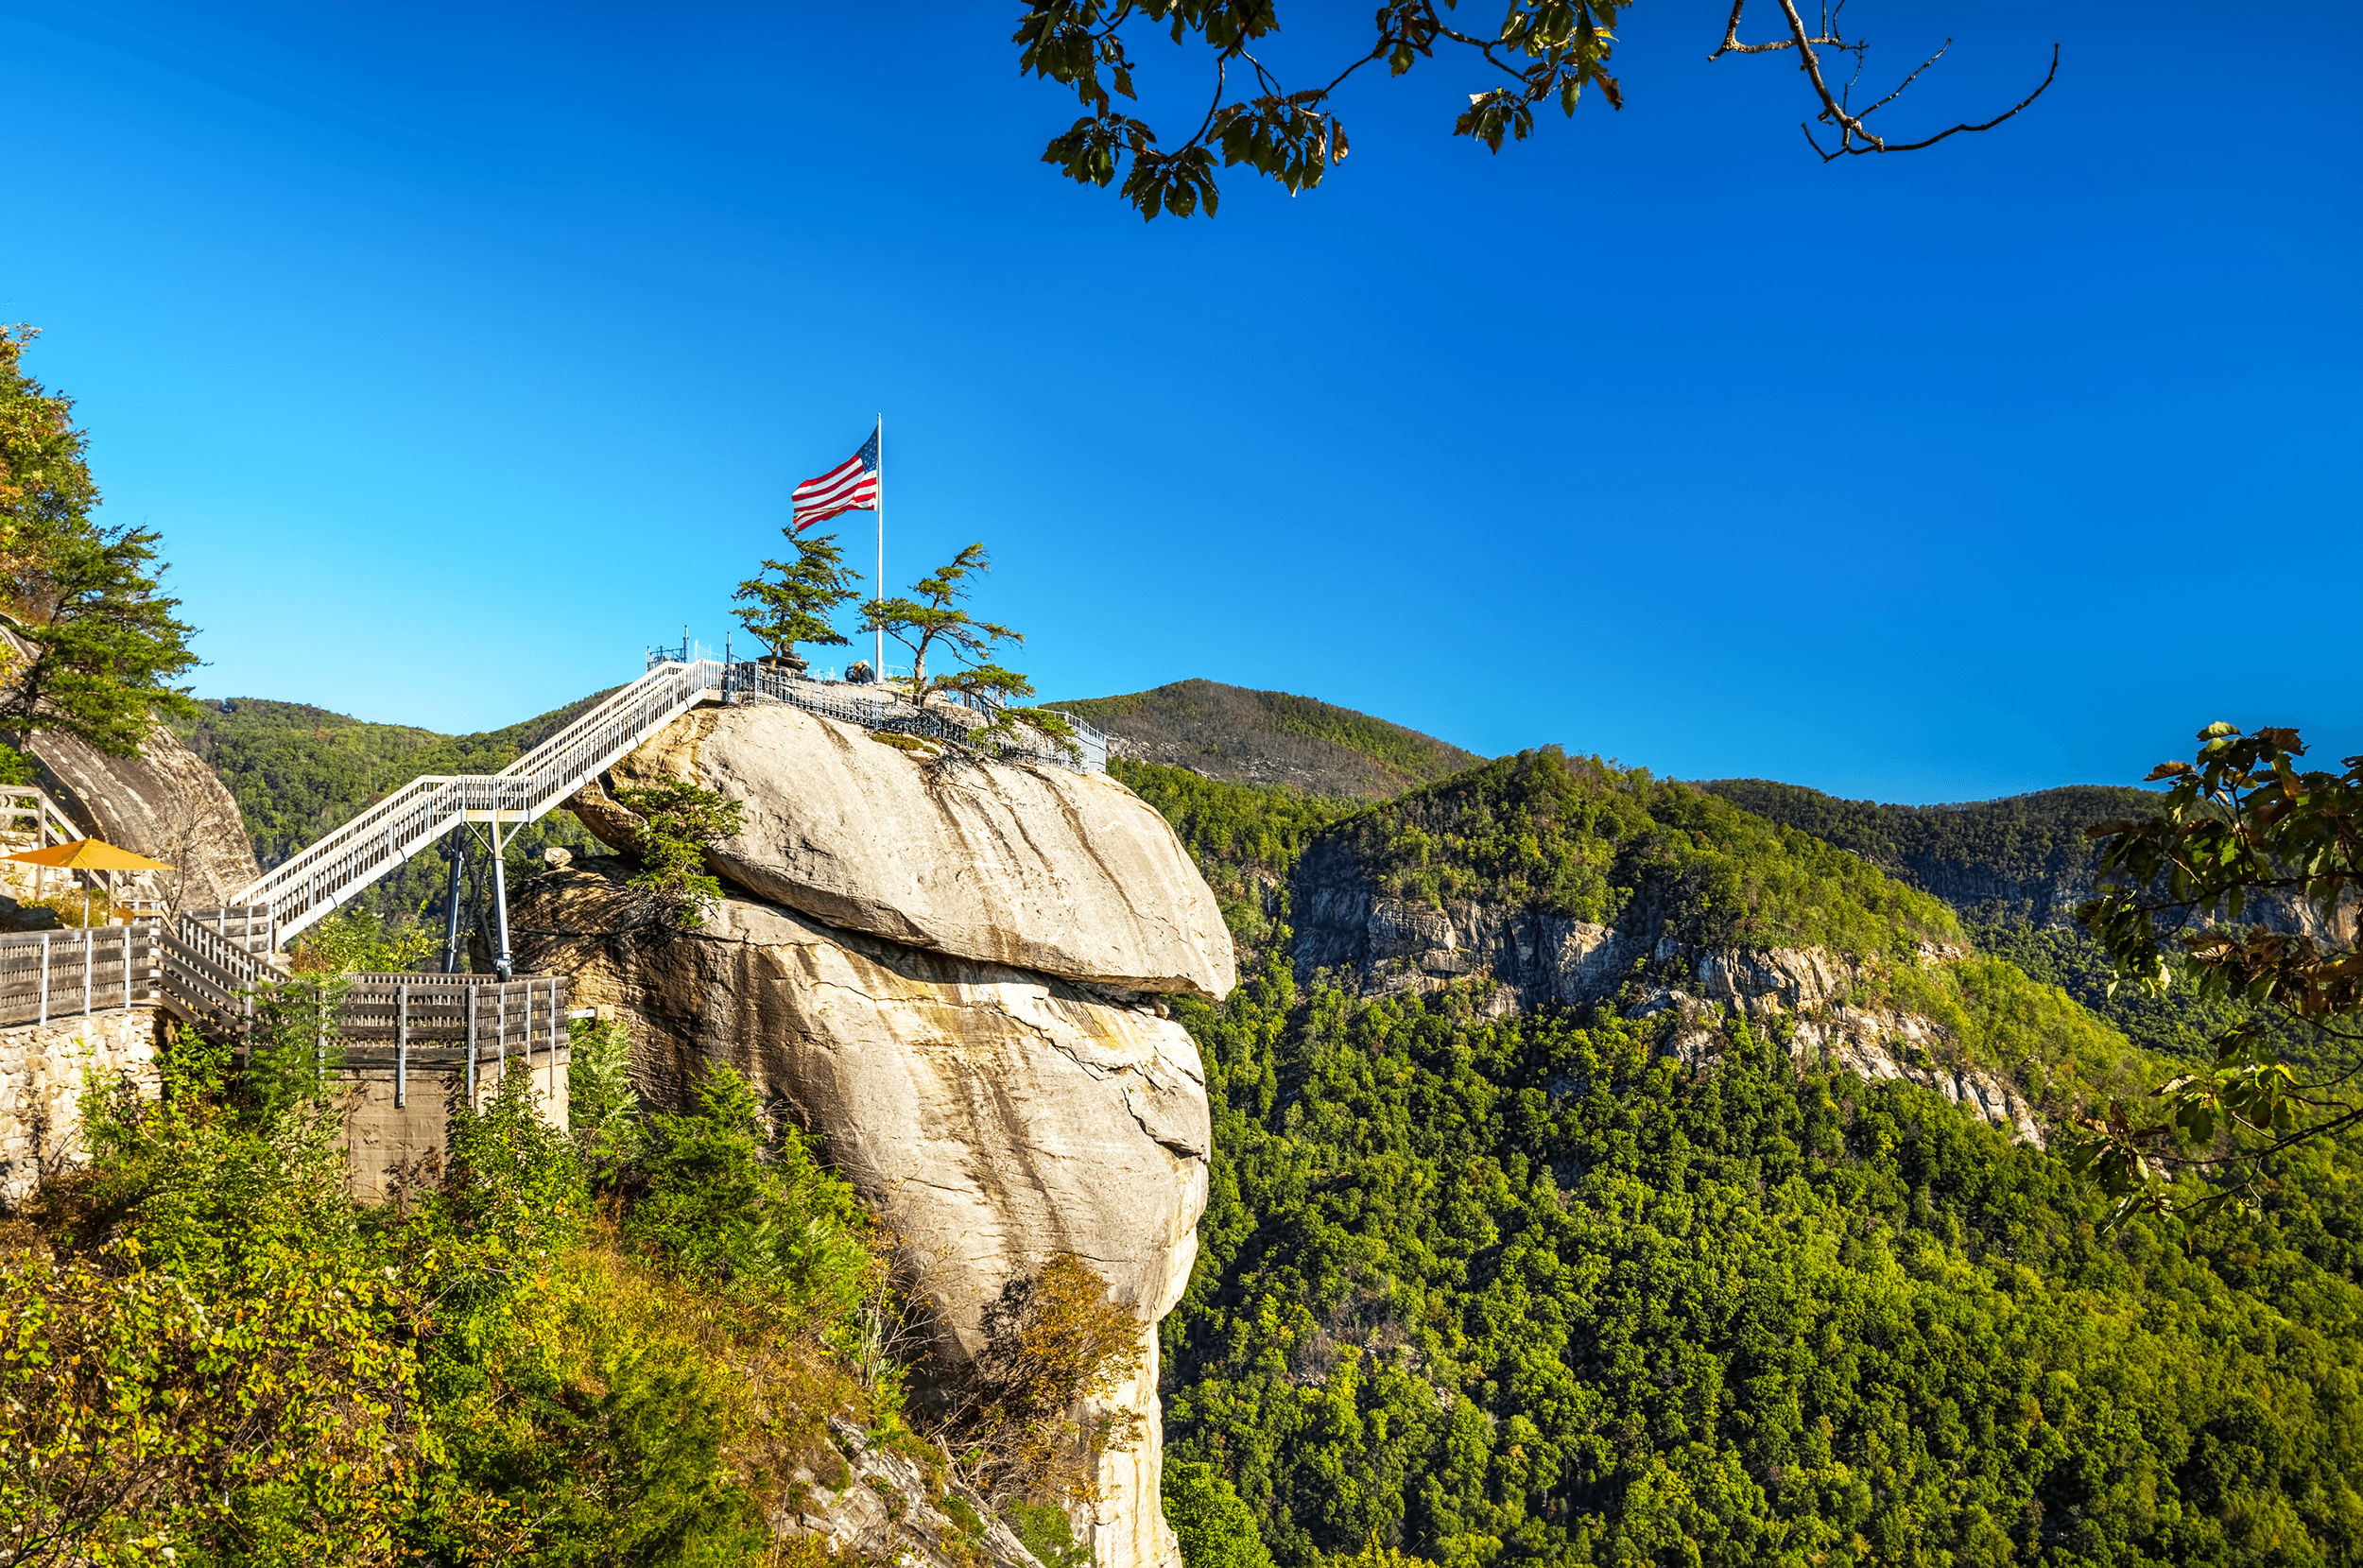 While taking a rest on the terrace of the  Sky Lounge , you can enjoy picture-perfect afternoon views of  Chimney Rock . For those, who took the elevator up, this would be the first up-close glimpse of  Chimney Rock  as you exit the Sky Lounge.